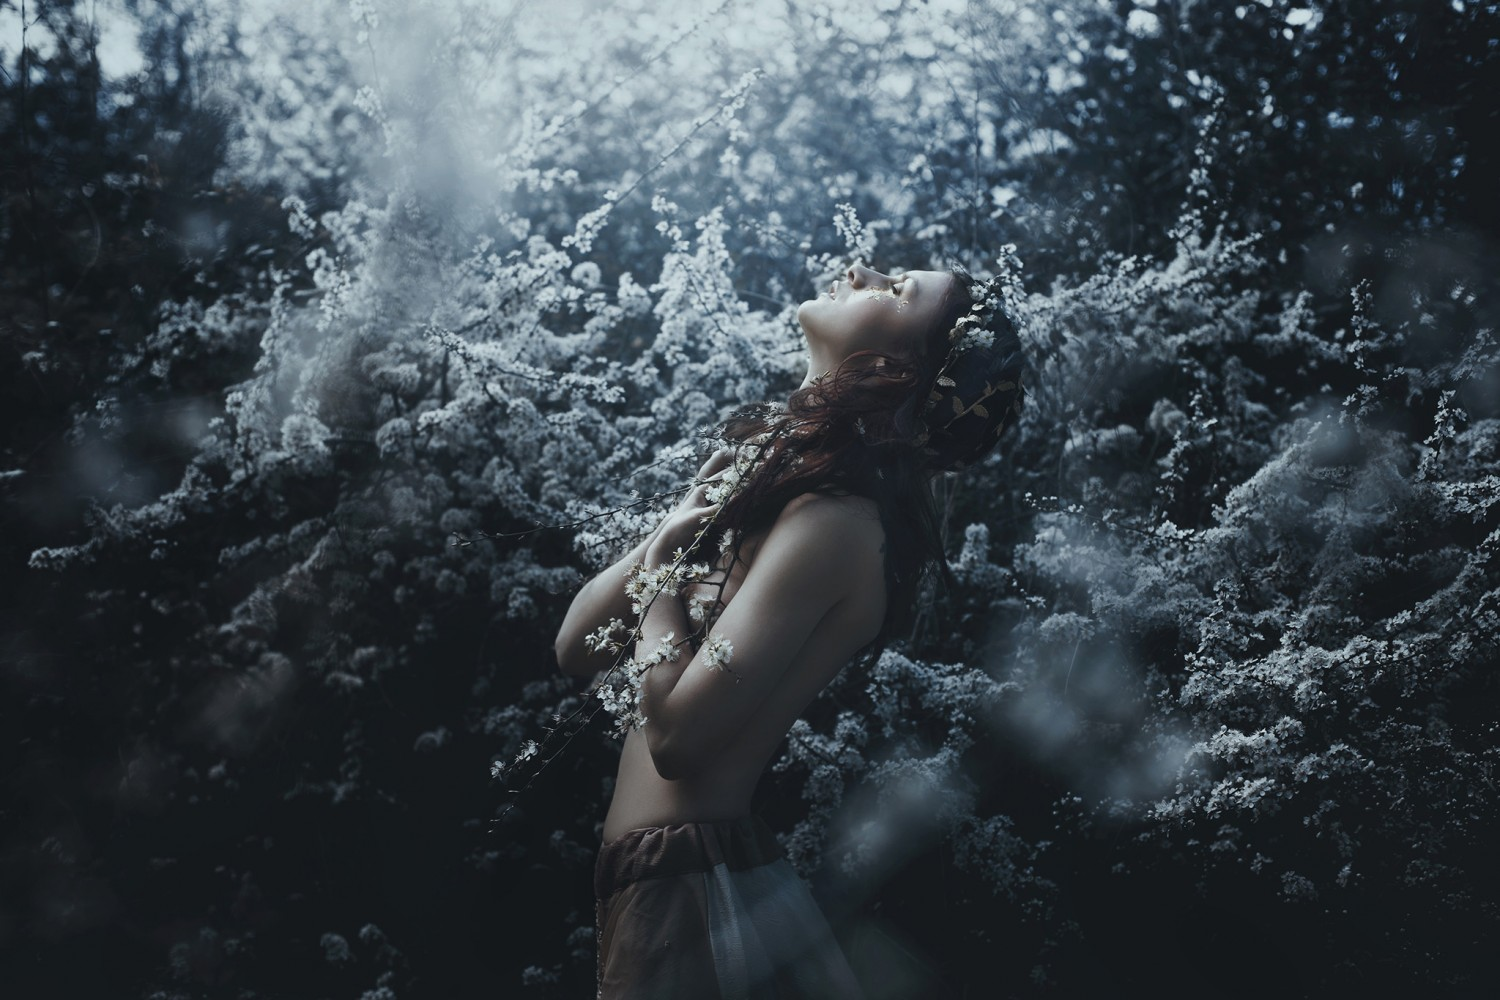 Get Lost in The Sublime Faerie Worlds of 500pxer Bella Kotak